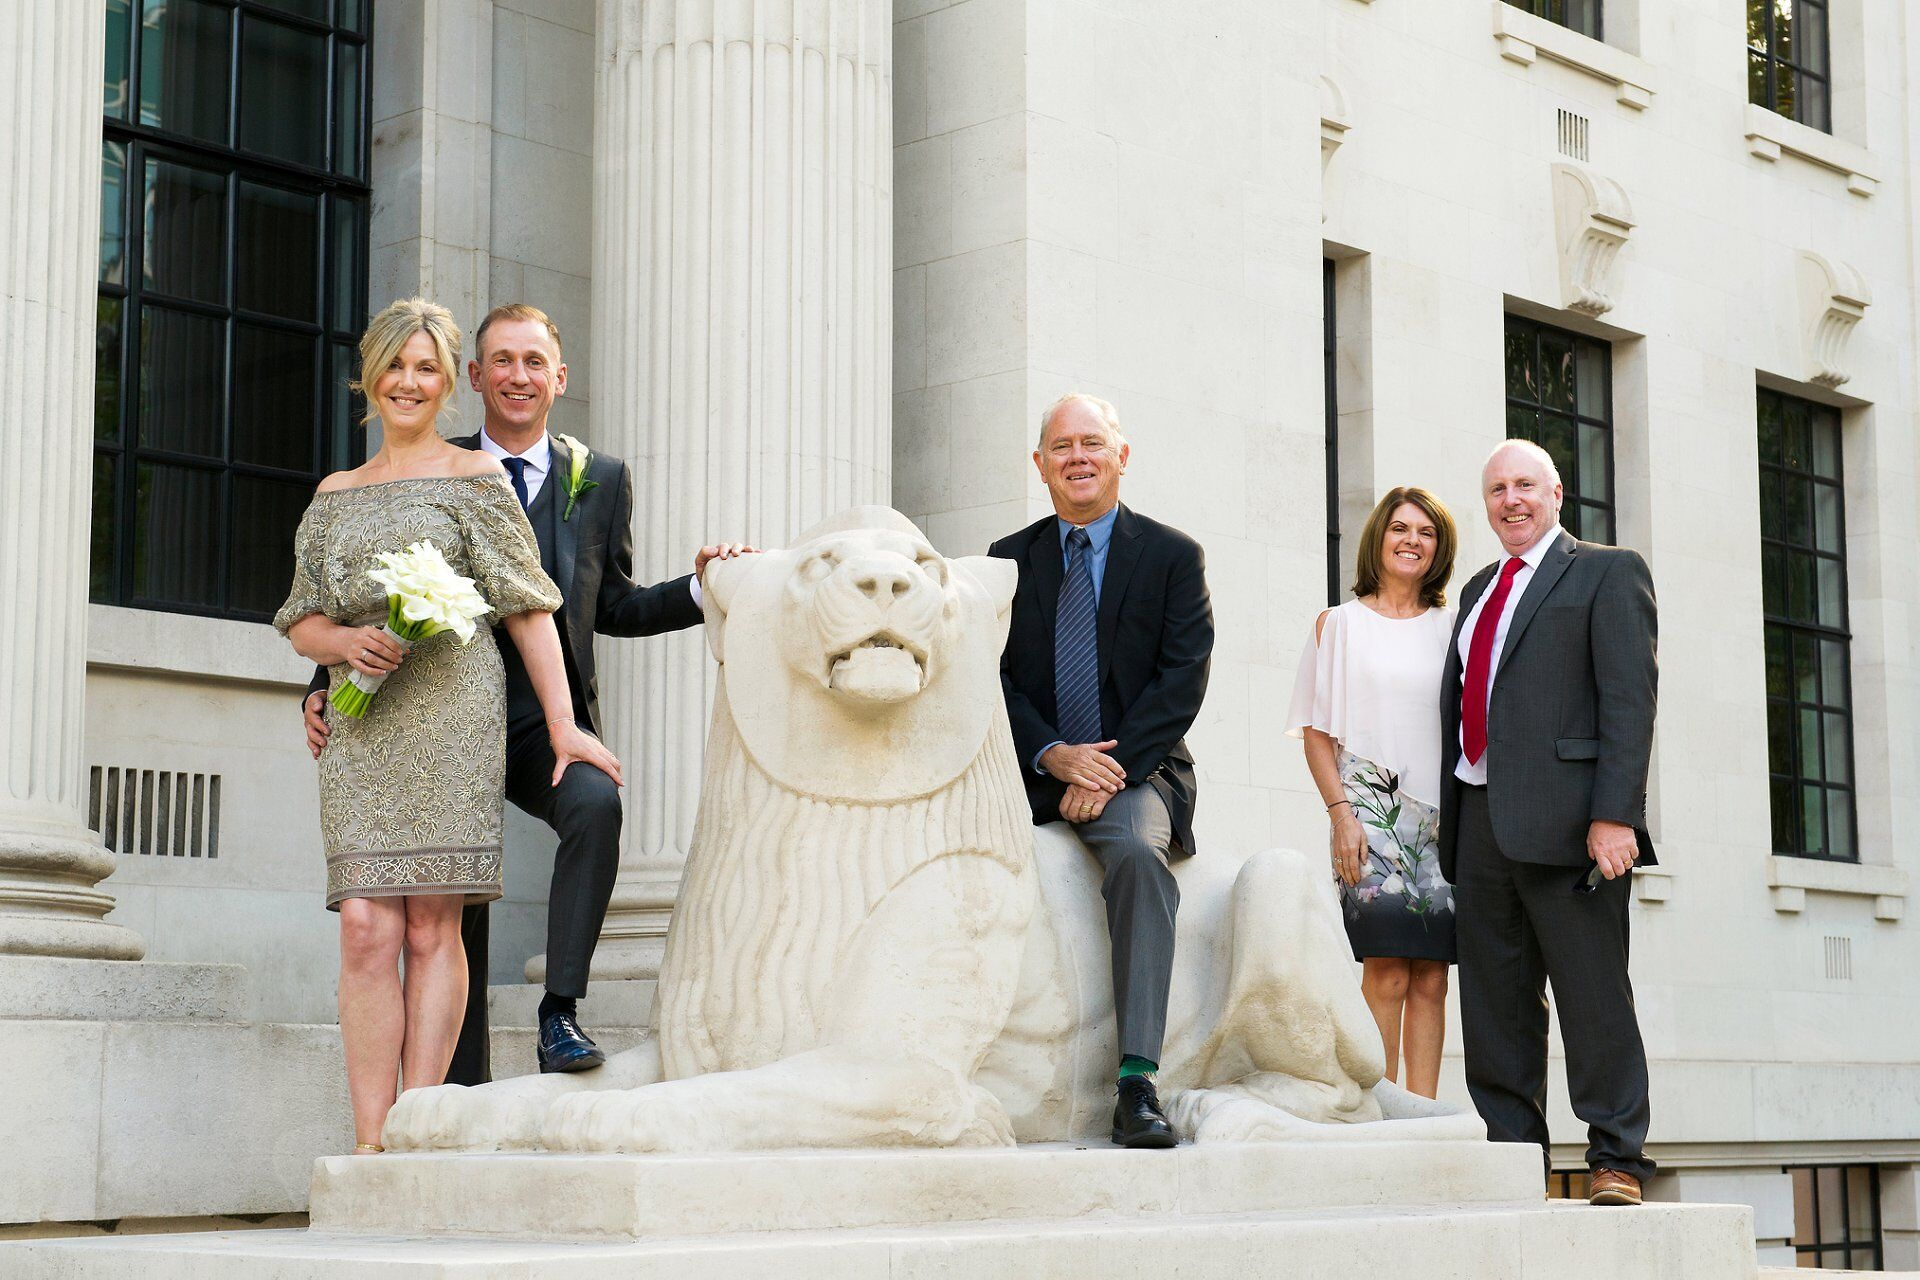 a group photograph incorporating an old marylebone town hall stone lion